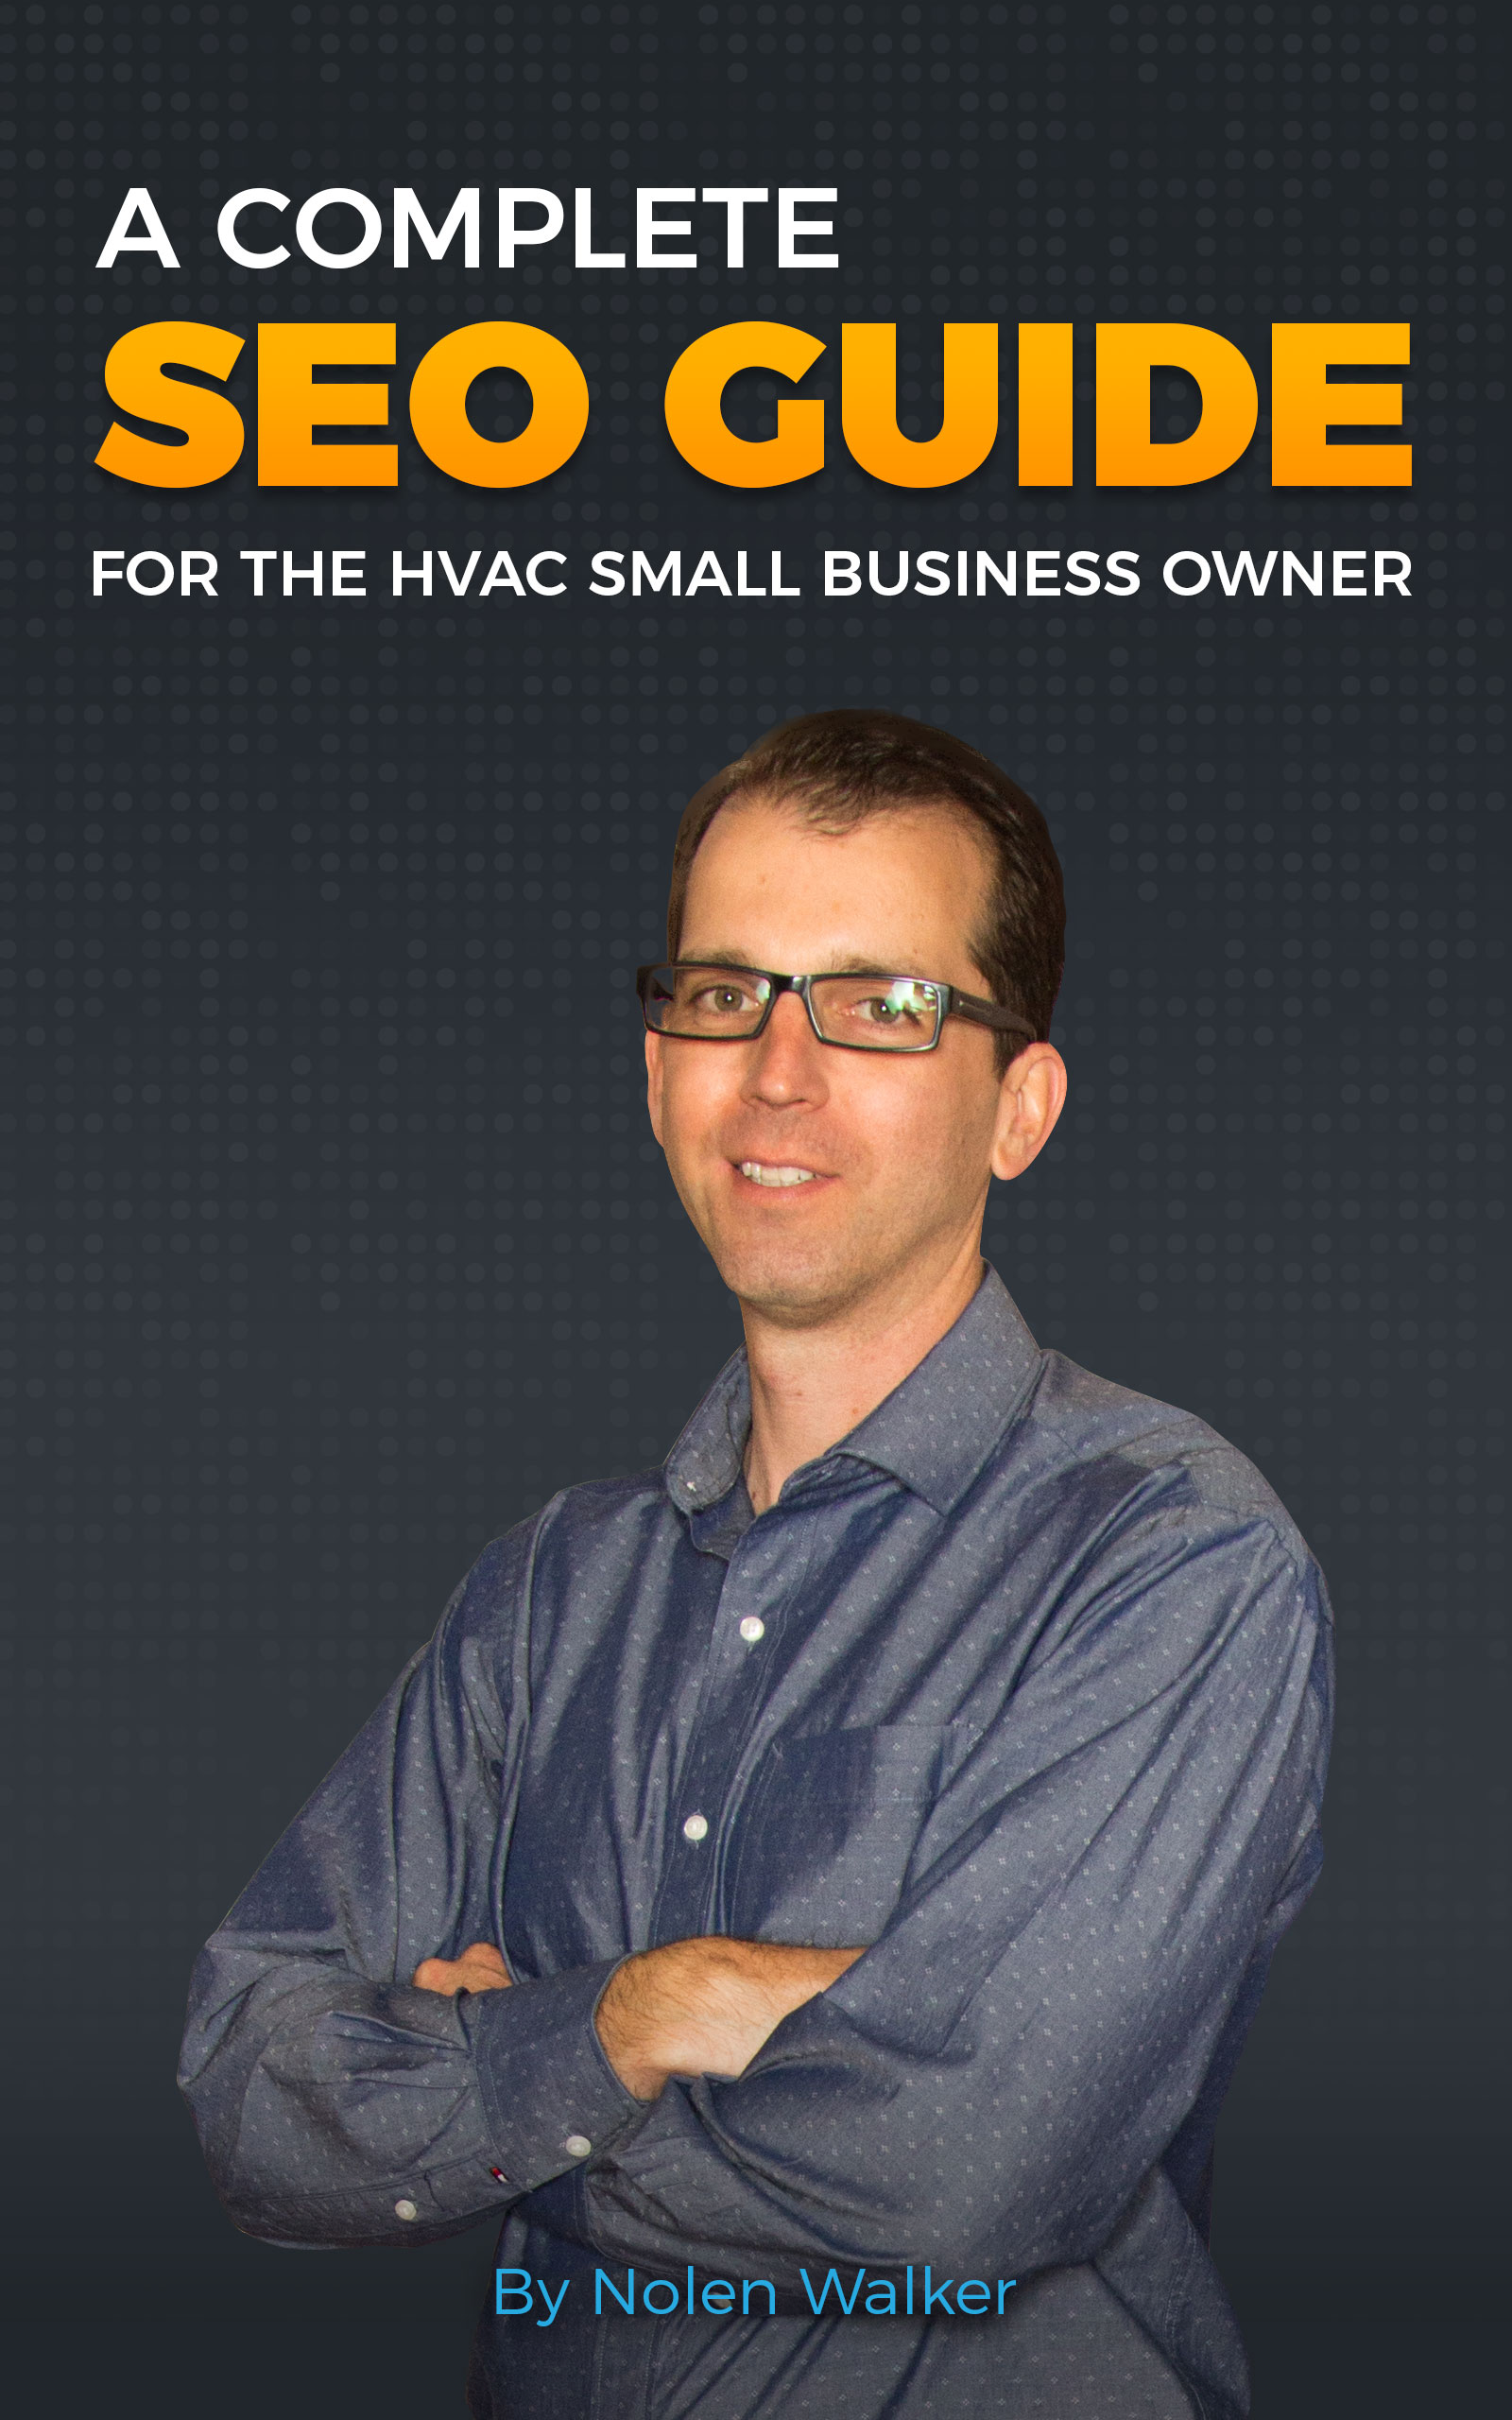 A Complete SEO Guide for the HVAC Small Business Owner